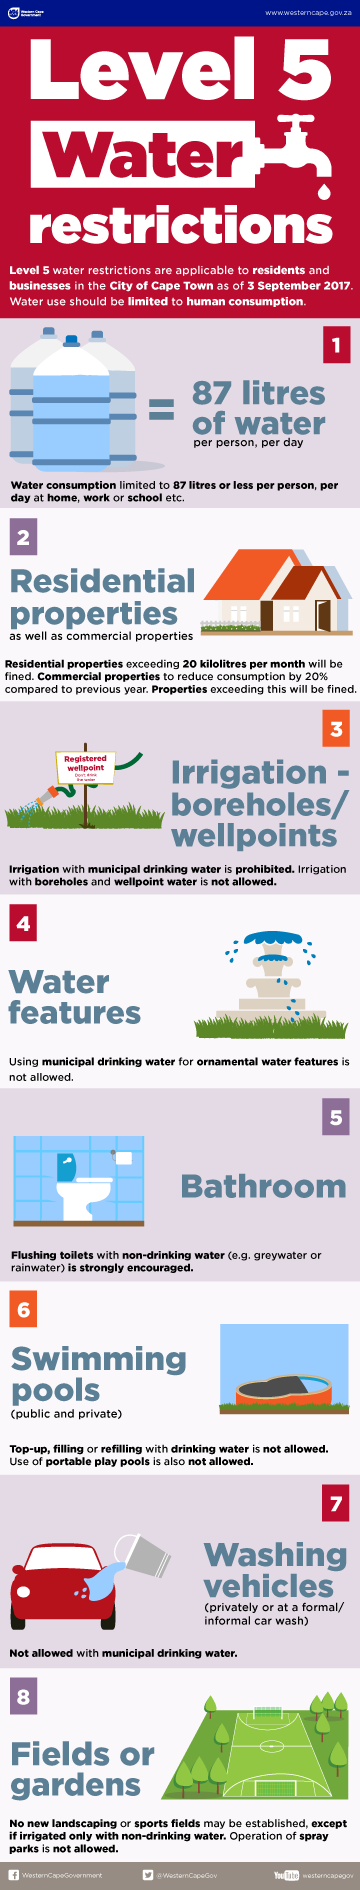 Level 5 Water restrictions